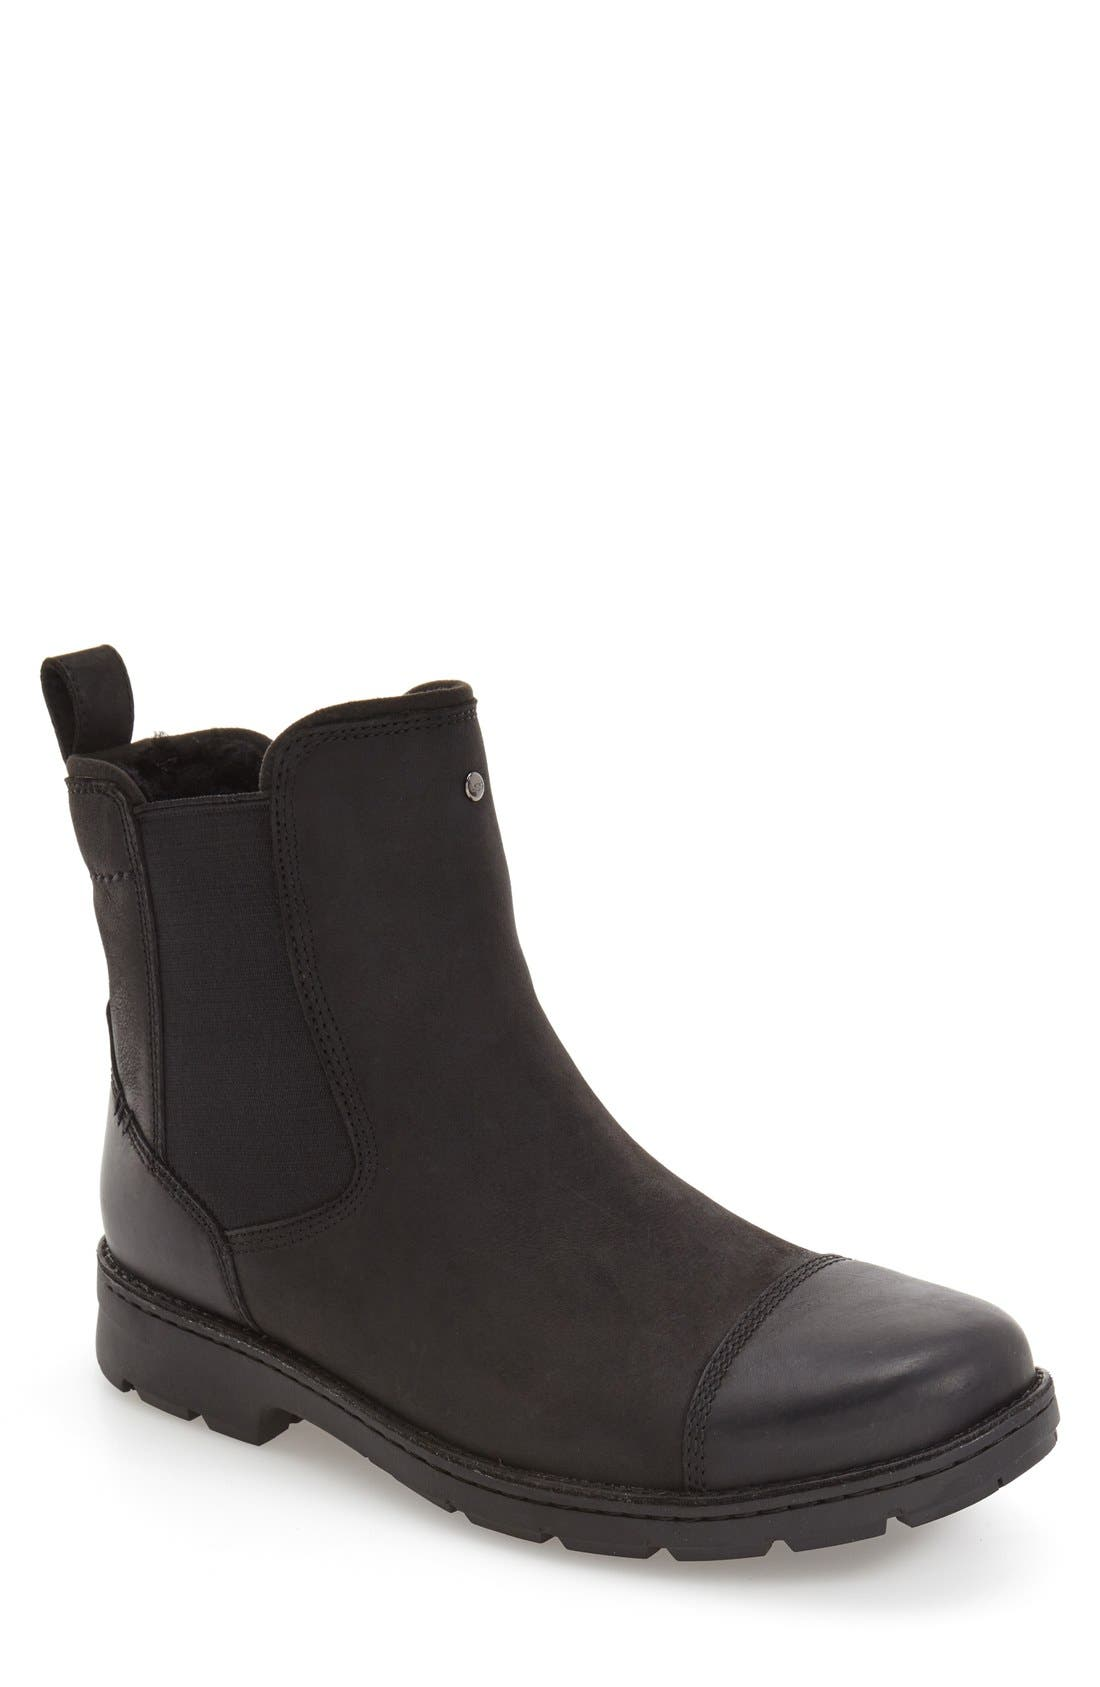 'Runyon' Chelsea Boot, Main, color, 001